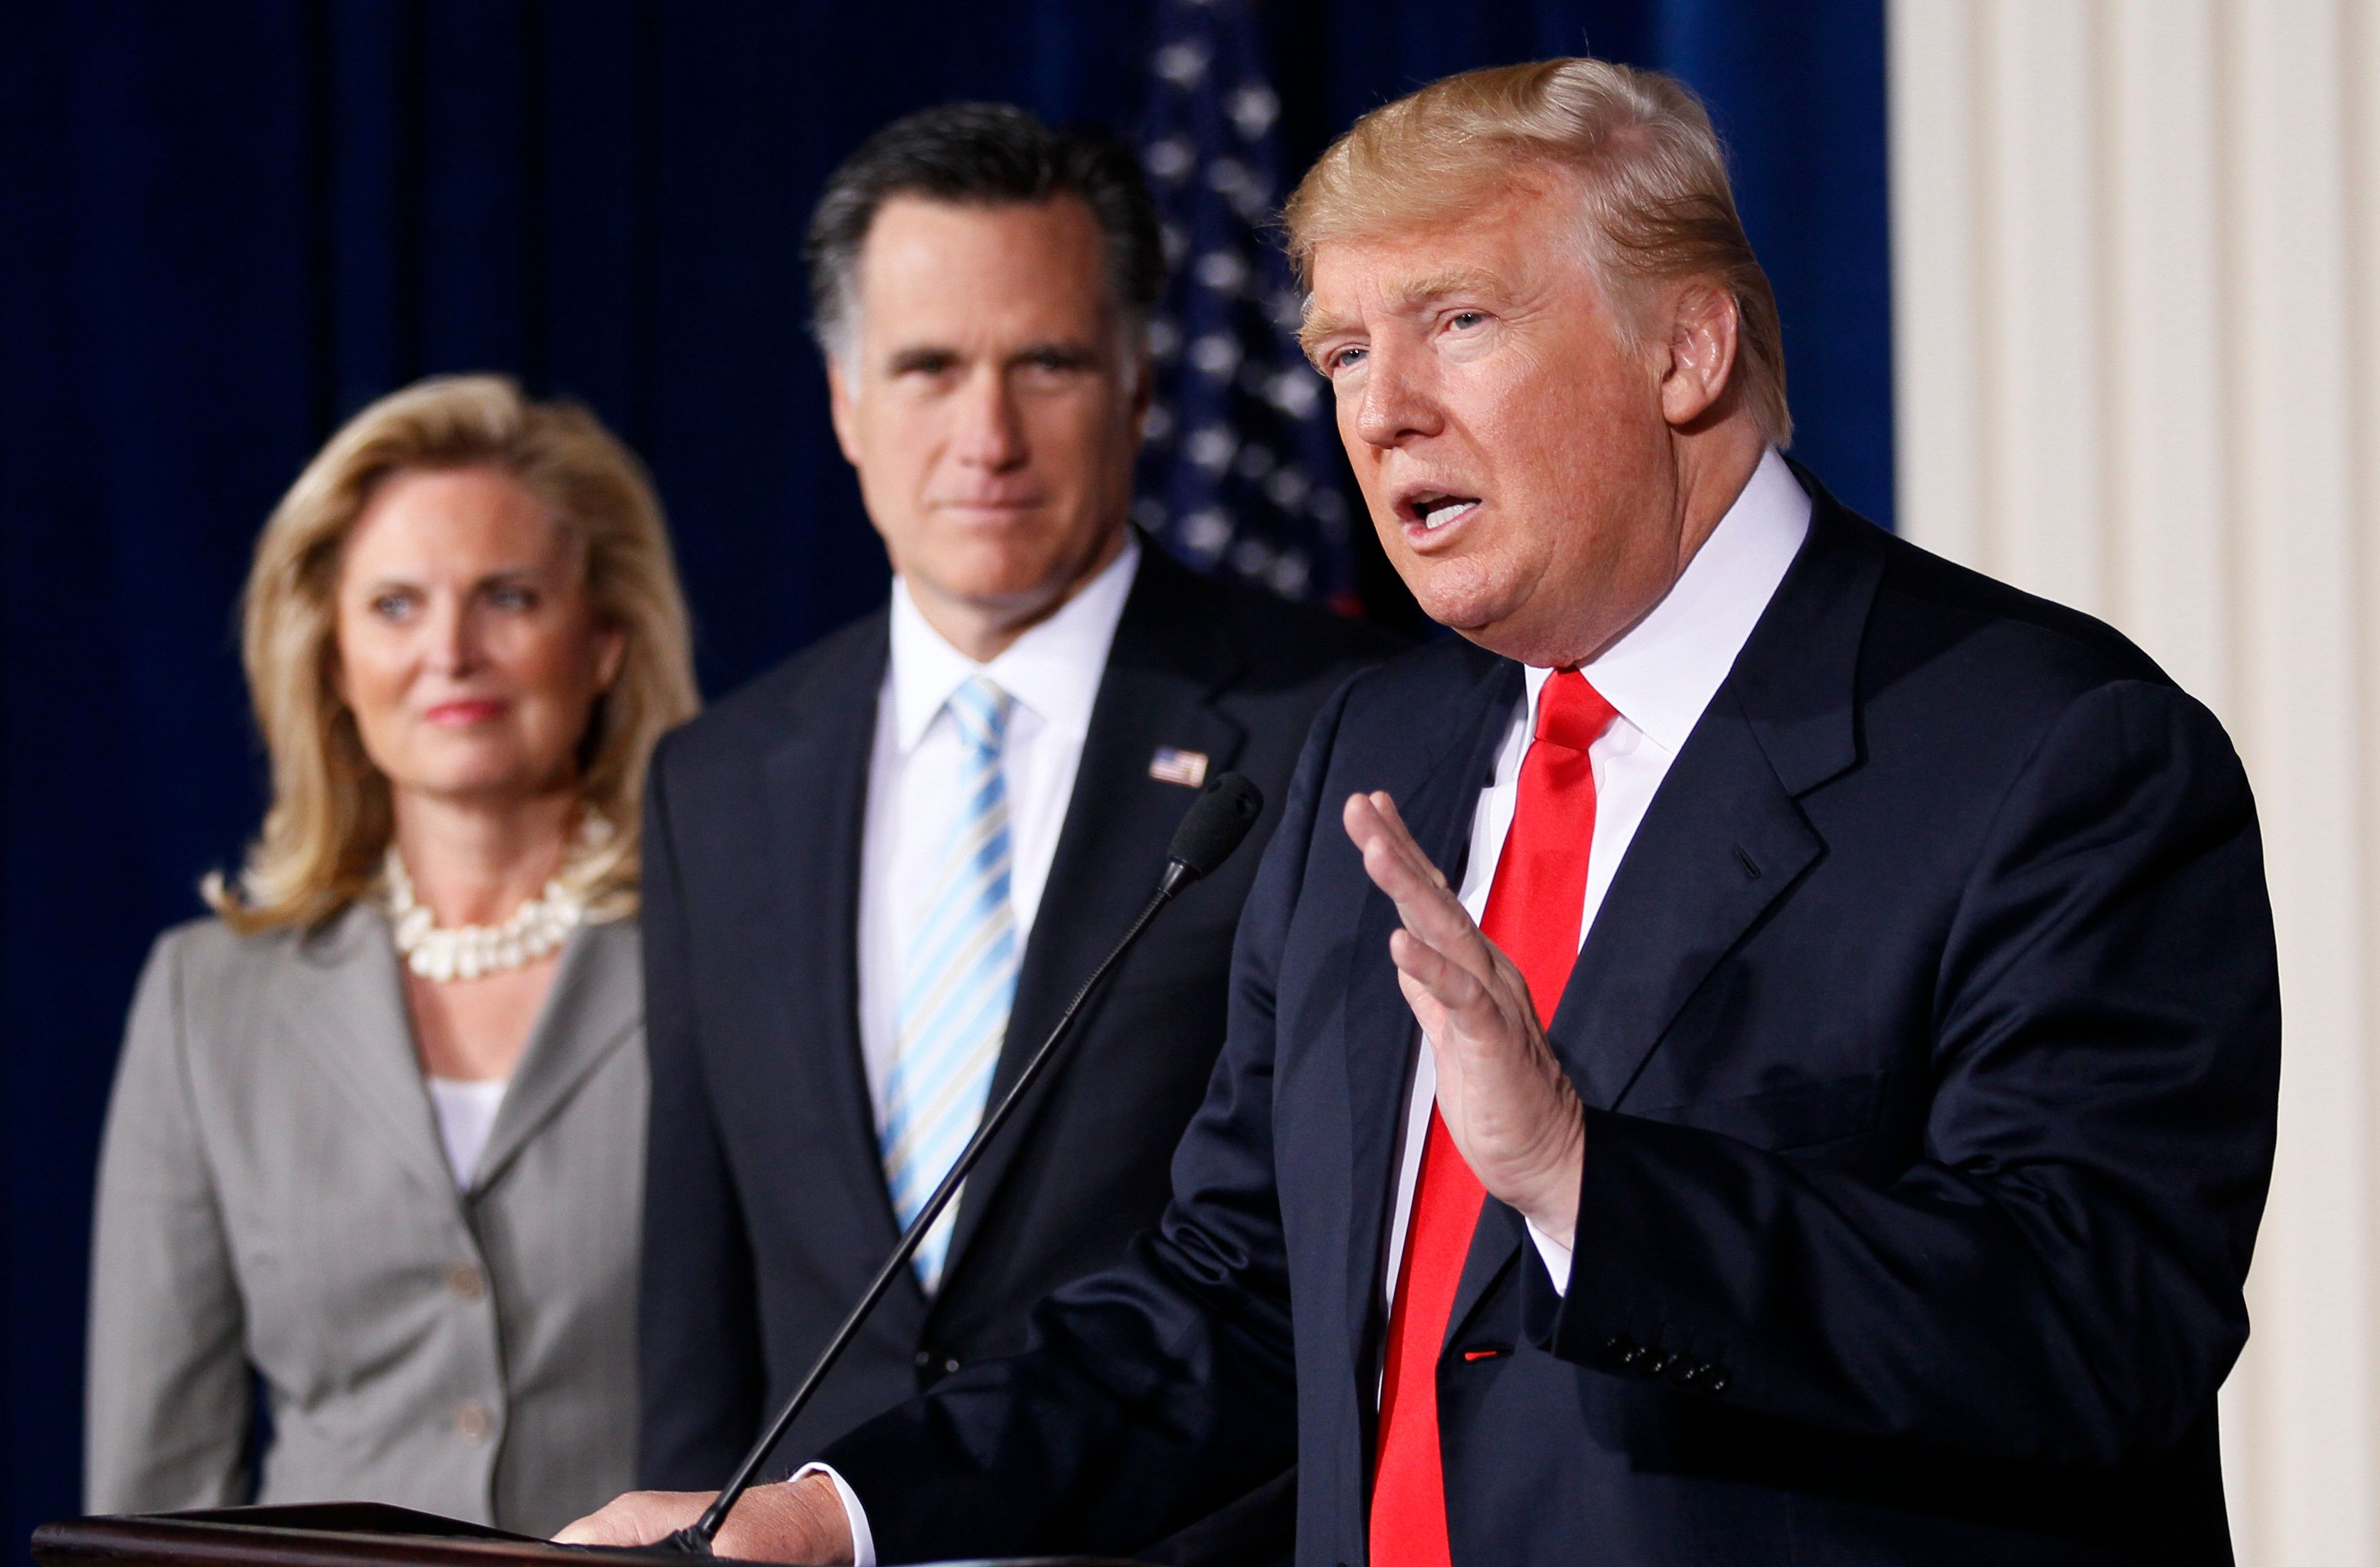 Businessman and real estate developer Donald Trump (R) endorses U.S. Republican presidential candidate and former Massachusetts Governor Mitt Romney's candidacy for president as Romney and his wife Ann look on at the Trump Hotel in Las Vegas, Nevada February 2, 2012. REUTERS/Rick Wilking (UNITED STATES  - Tags: POLITICS ELECTIONS BUSINESS)